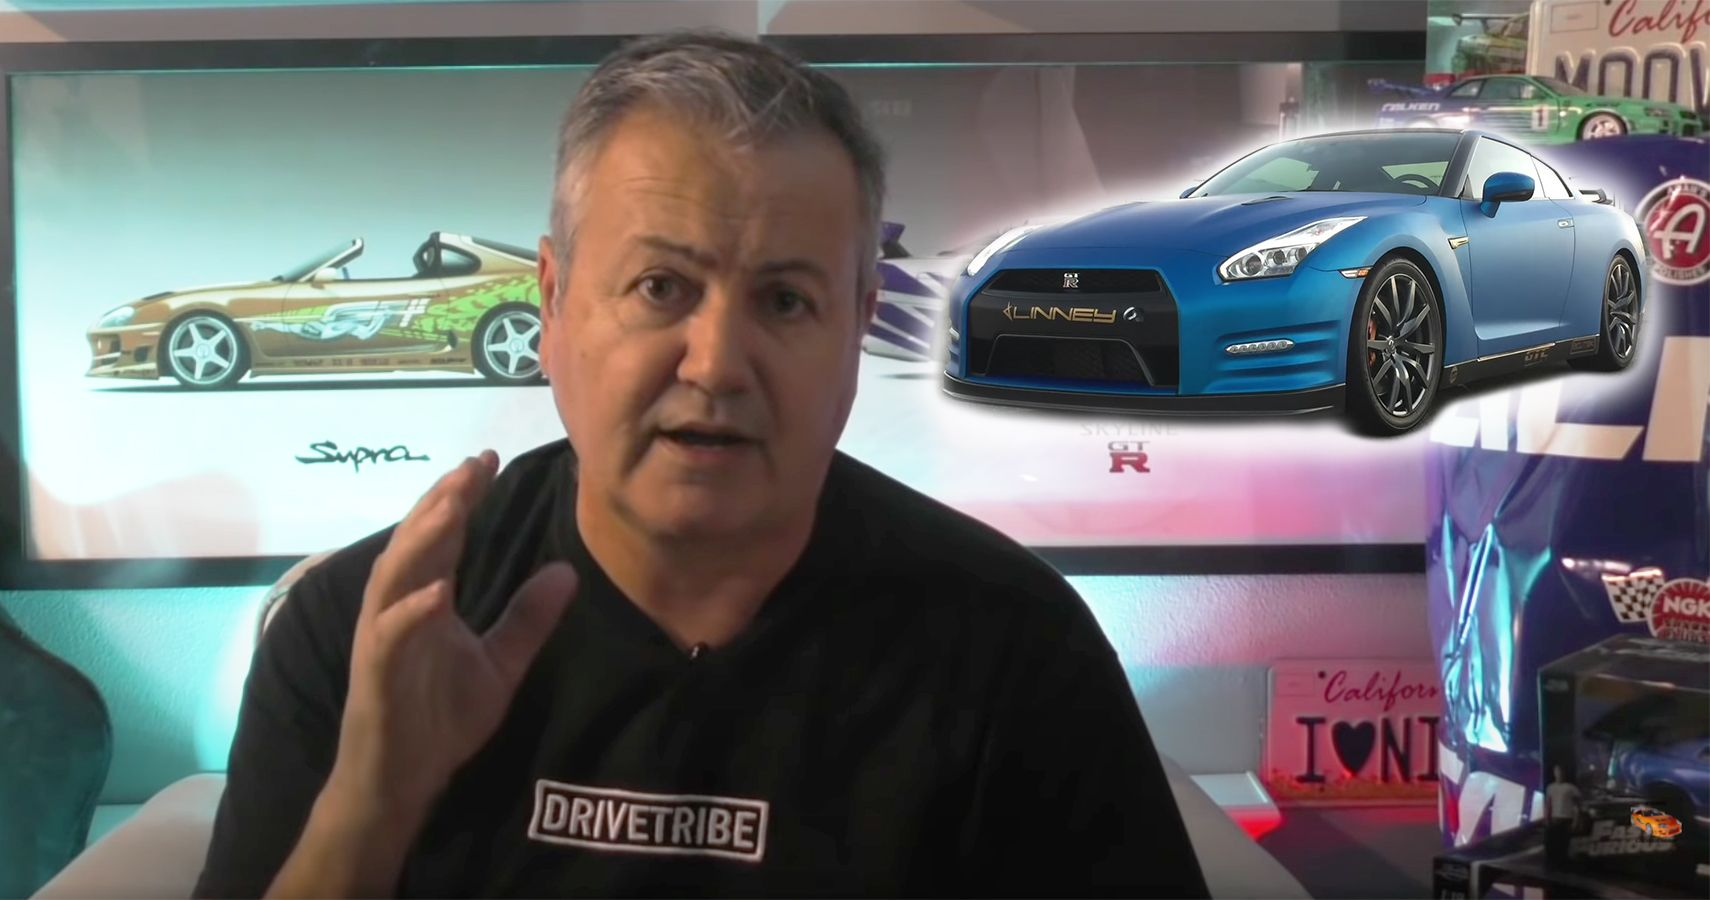 'Fast and Furious' Technical Advisor Shares True Cost Of Owning R35 Nissan GT-R